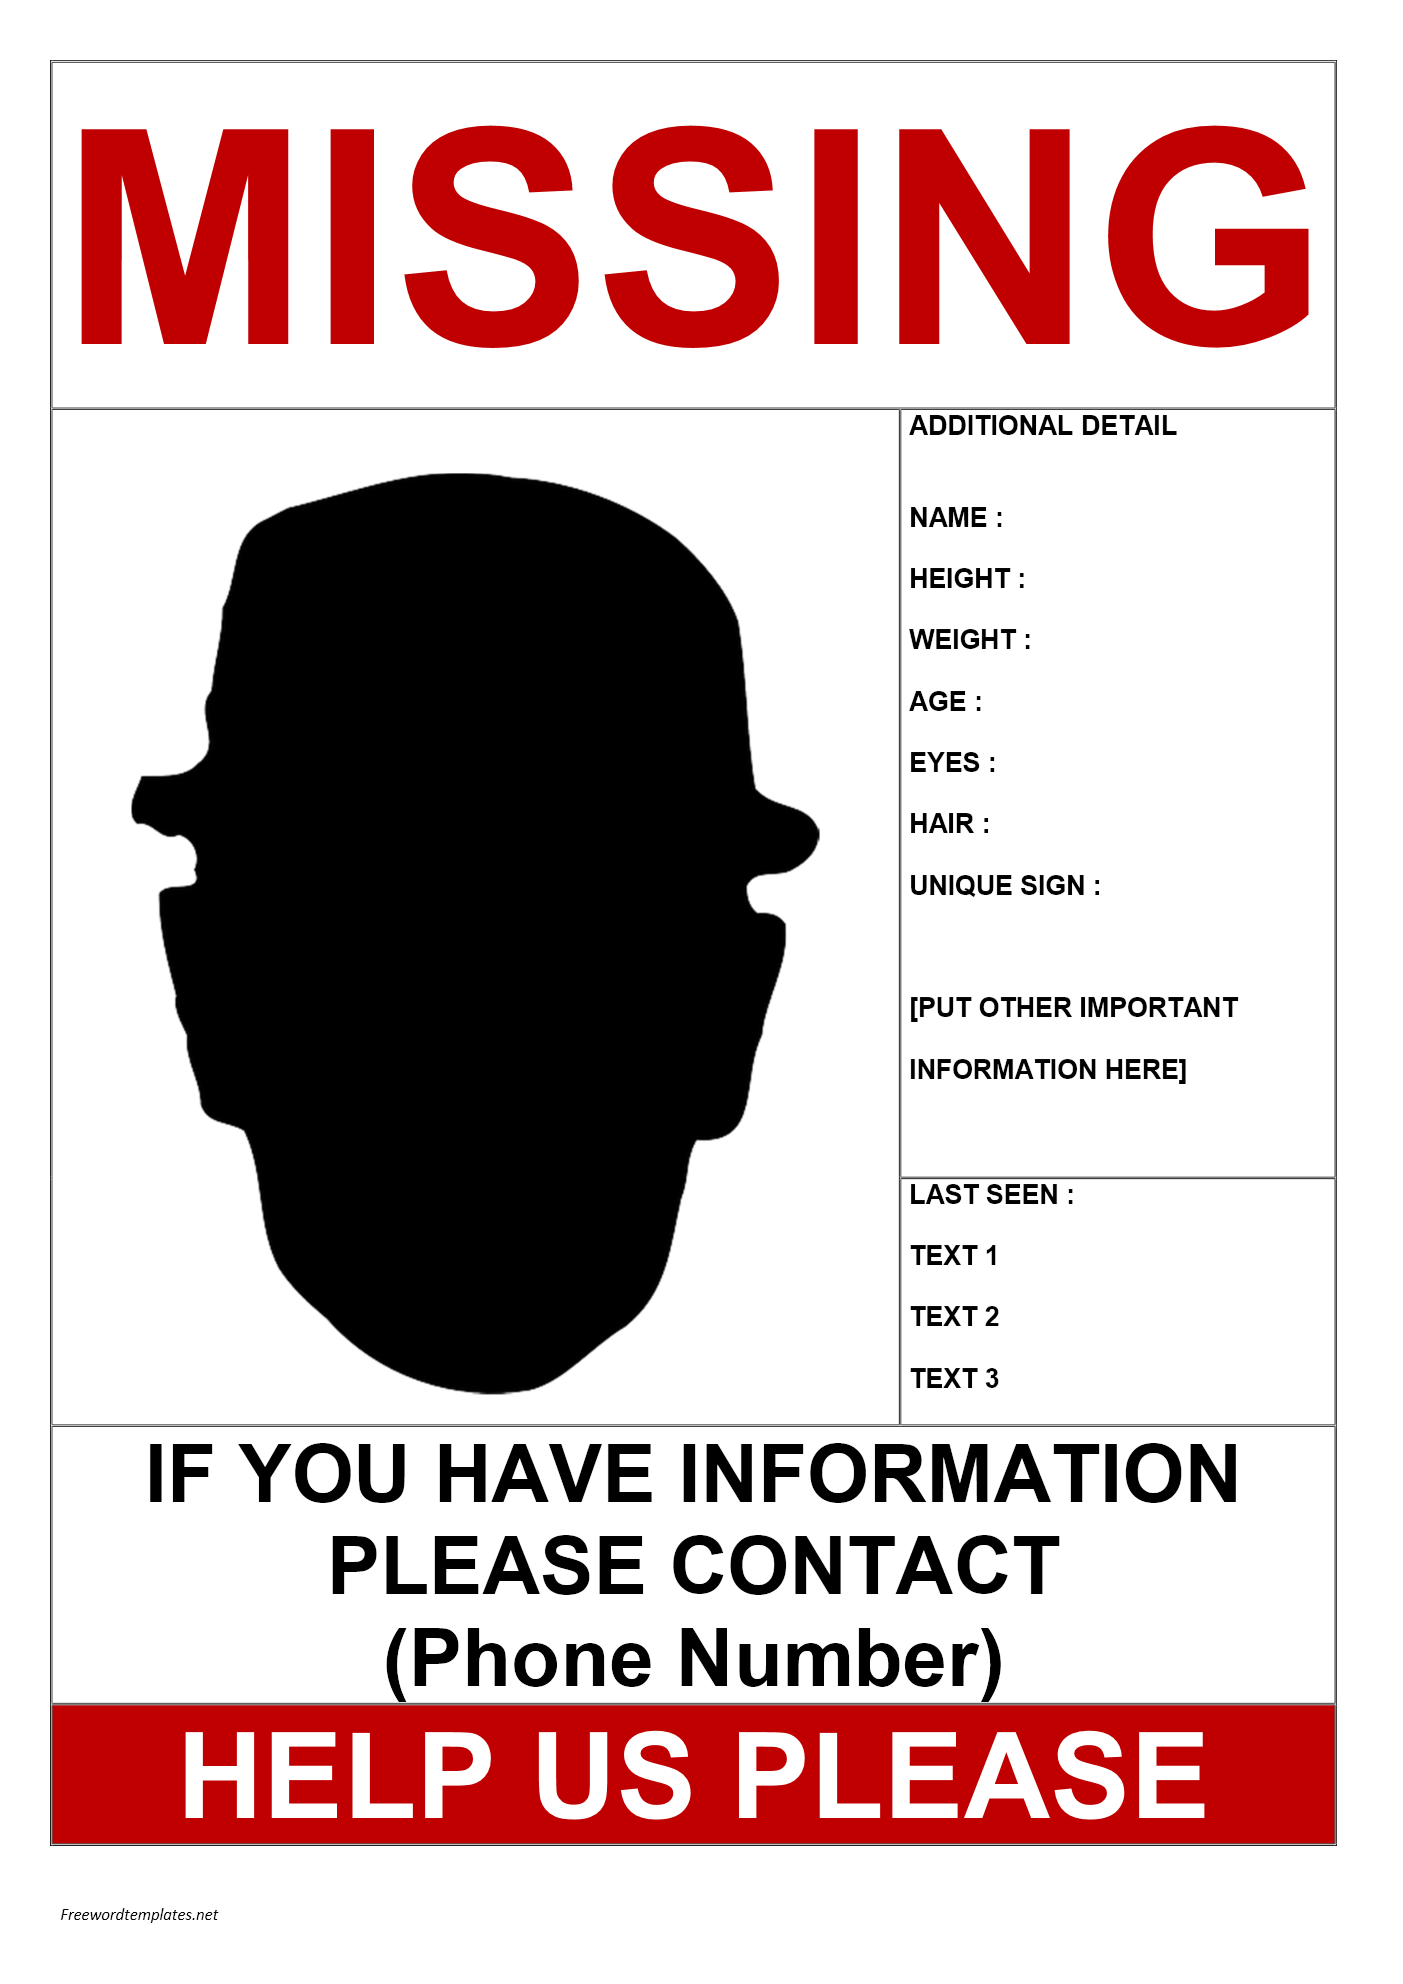 Missing Person Poster Template – Missing Persons Poster Template